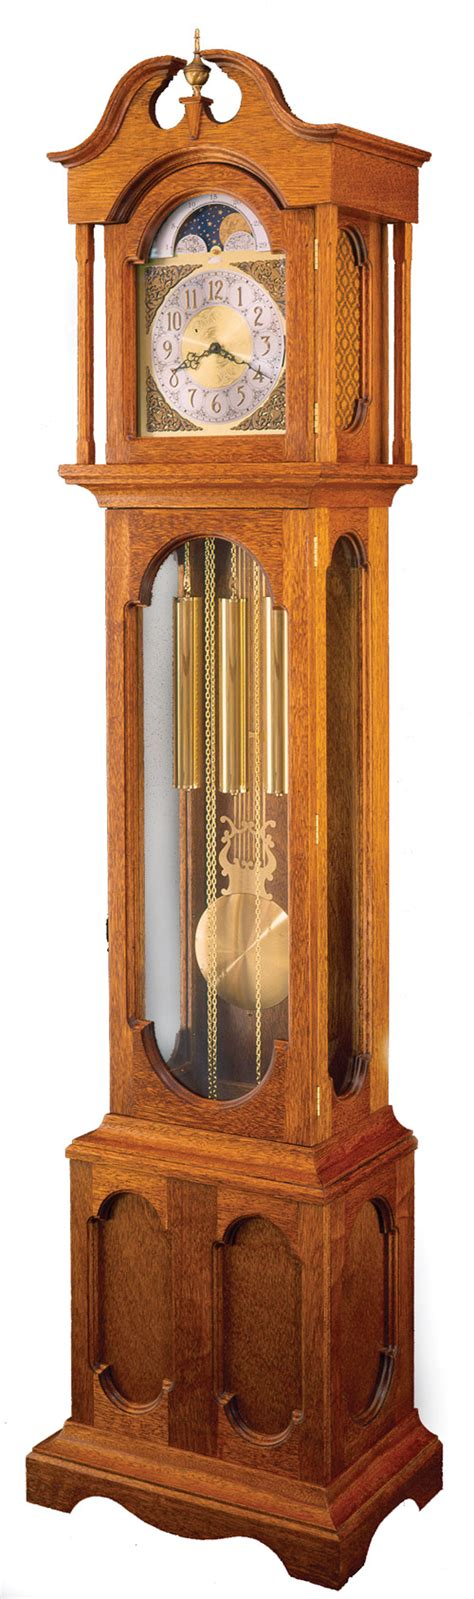 Free Grandfather Clock Plans Kits